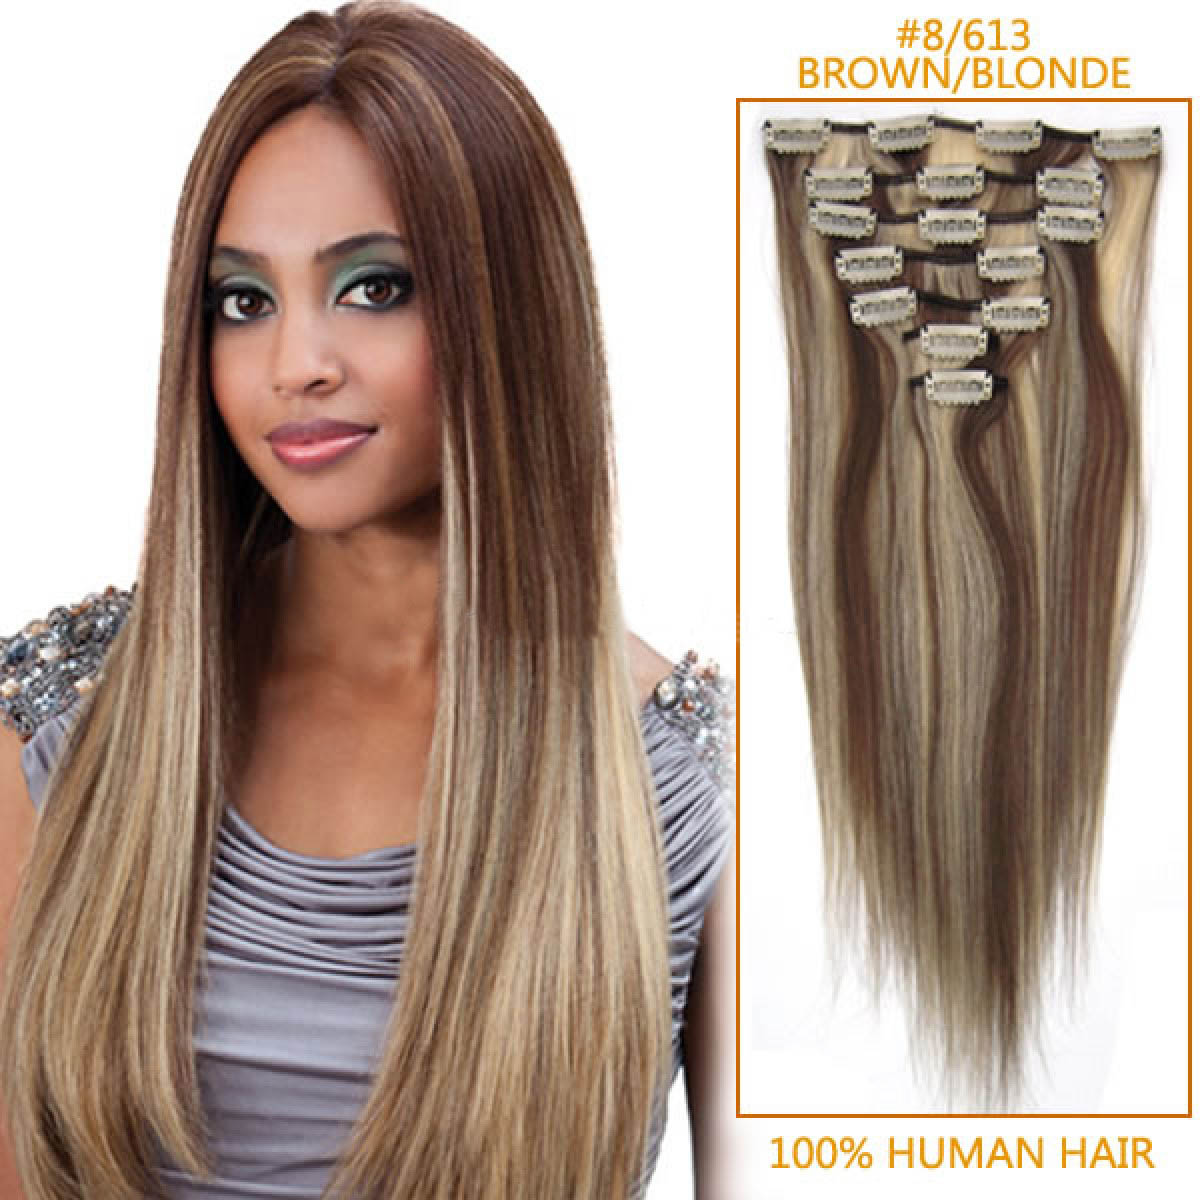 26 Inch 8613 Brownblonde Clip In Human Hair Extensions 10pcs